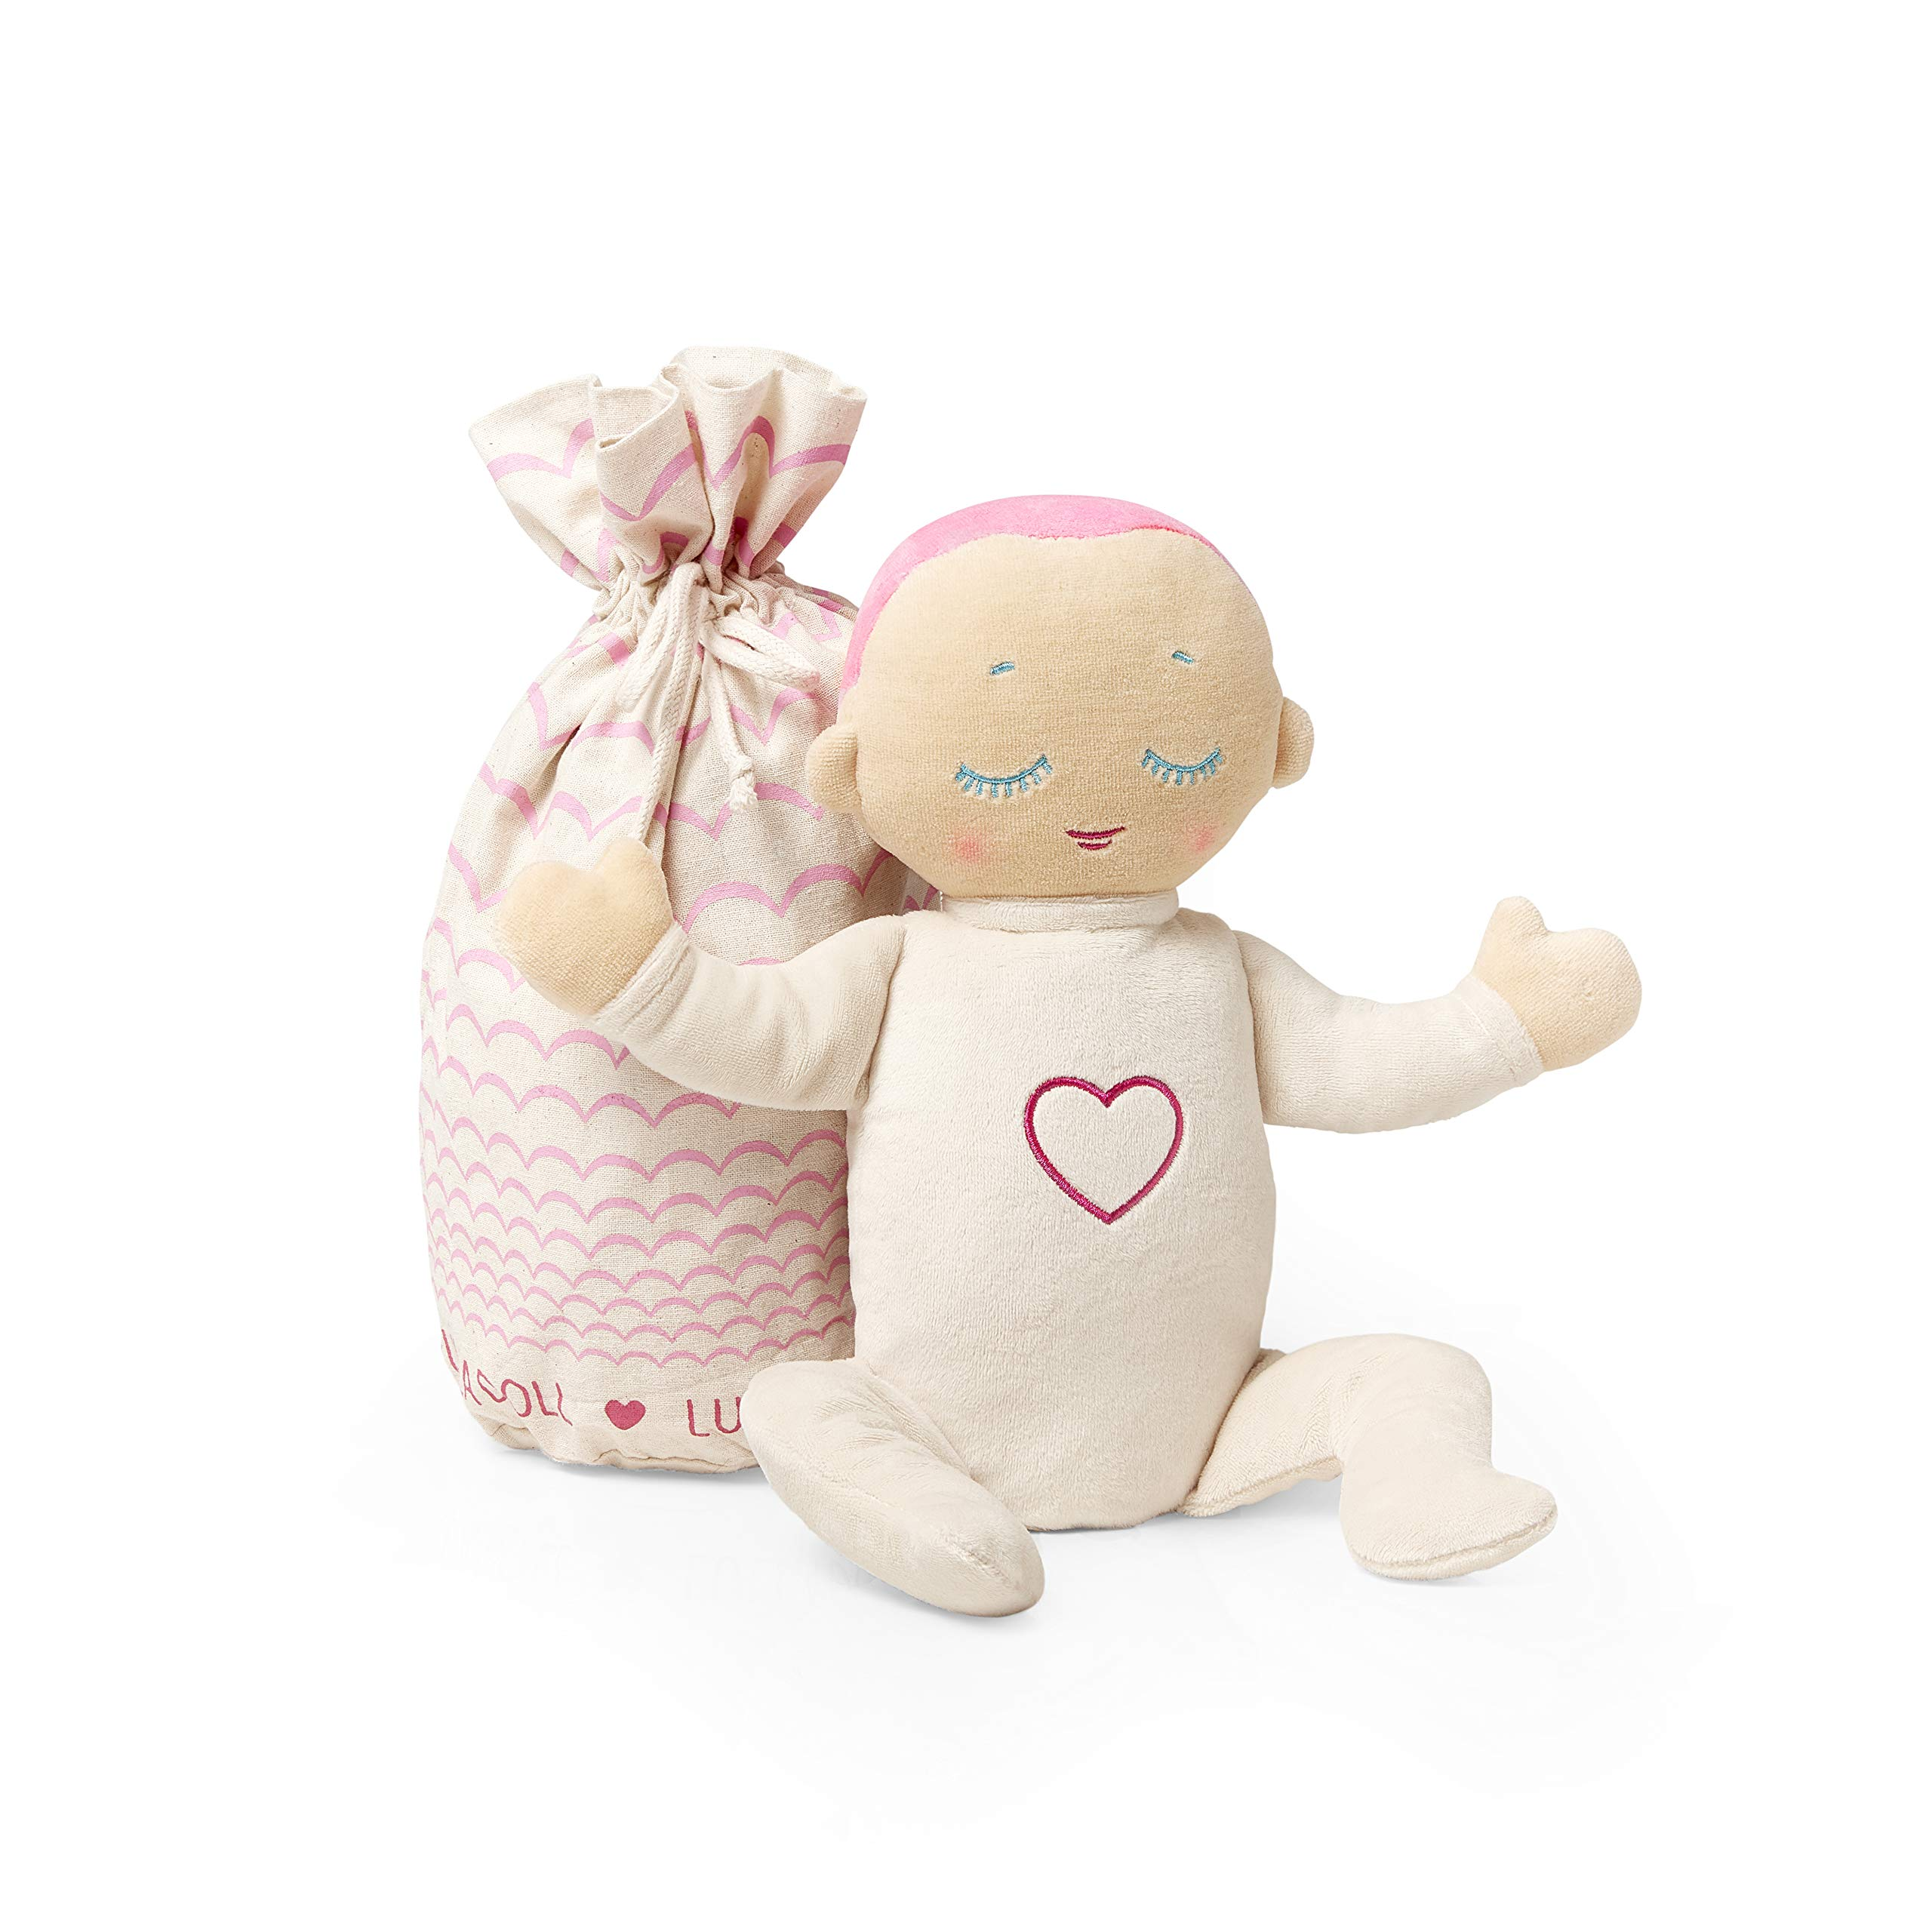 Lulla Doll Baby Sleep Companion and Comfort Soother-Lulla Coral